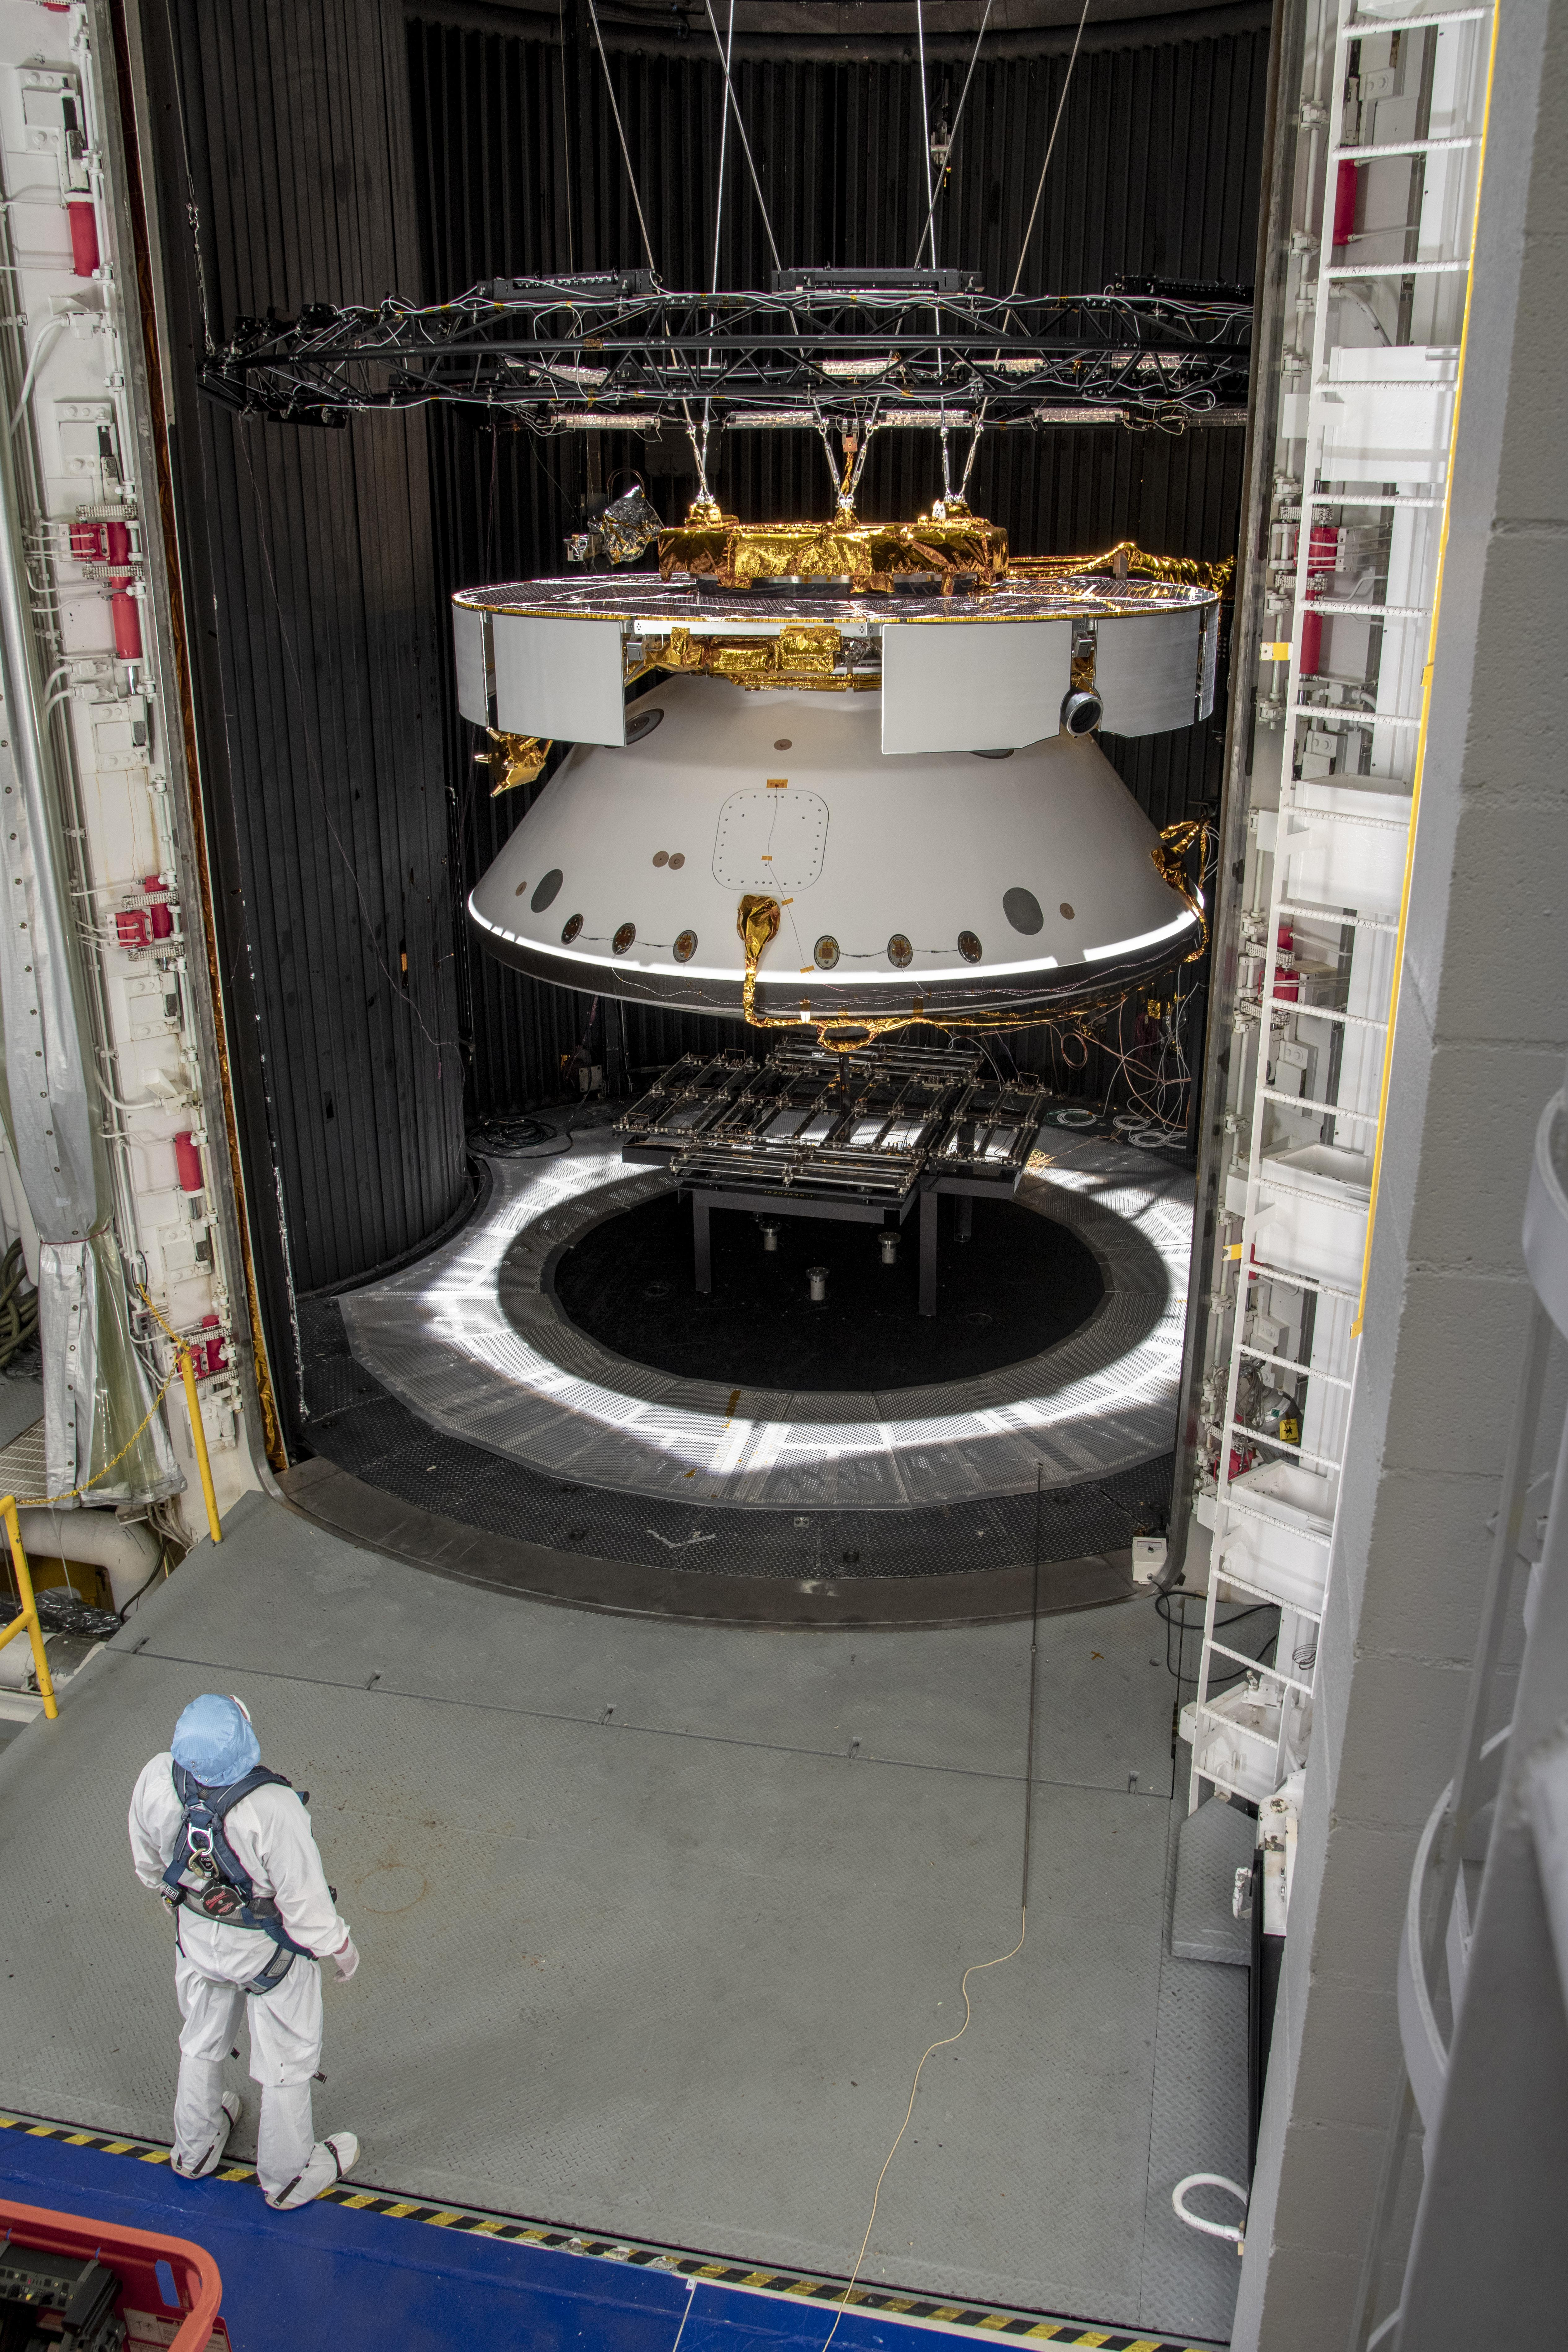 An engineer inspects the completed spacecraft that will carry NASAs next Mars rover to the Red Planet, prior to a test in the Space Simulator Facility at NASAs Jet Propulsion Laboratory in Pasadena, California.